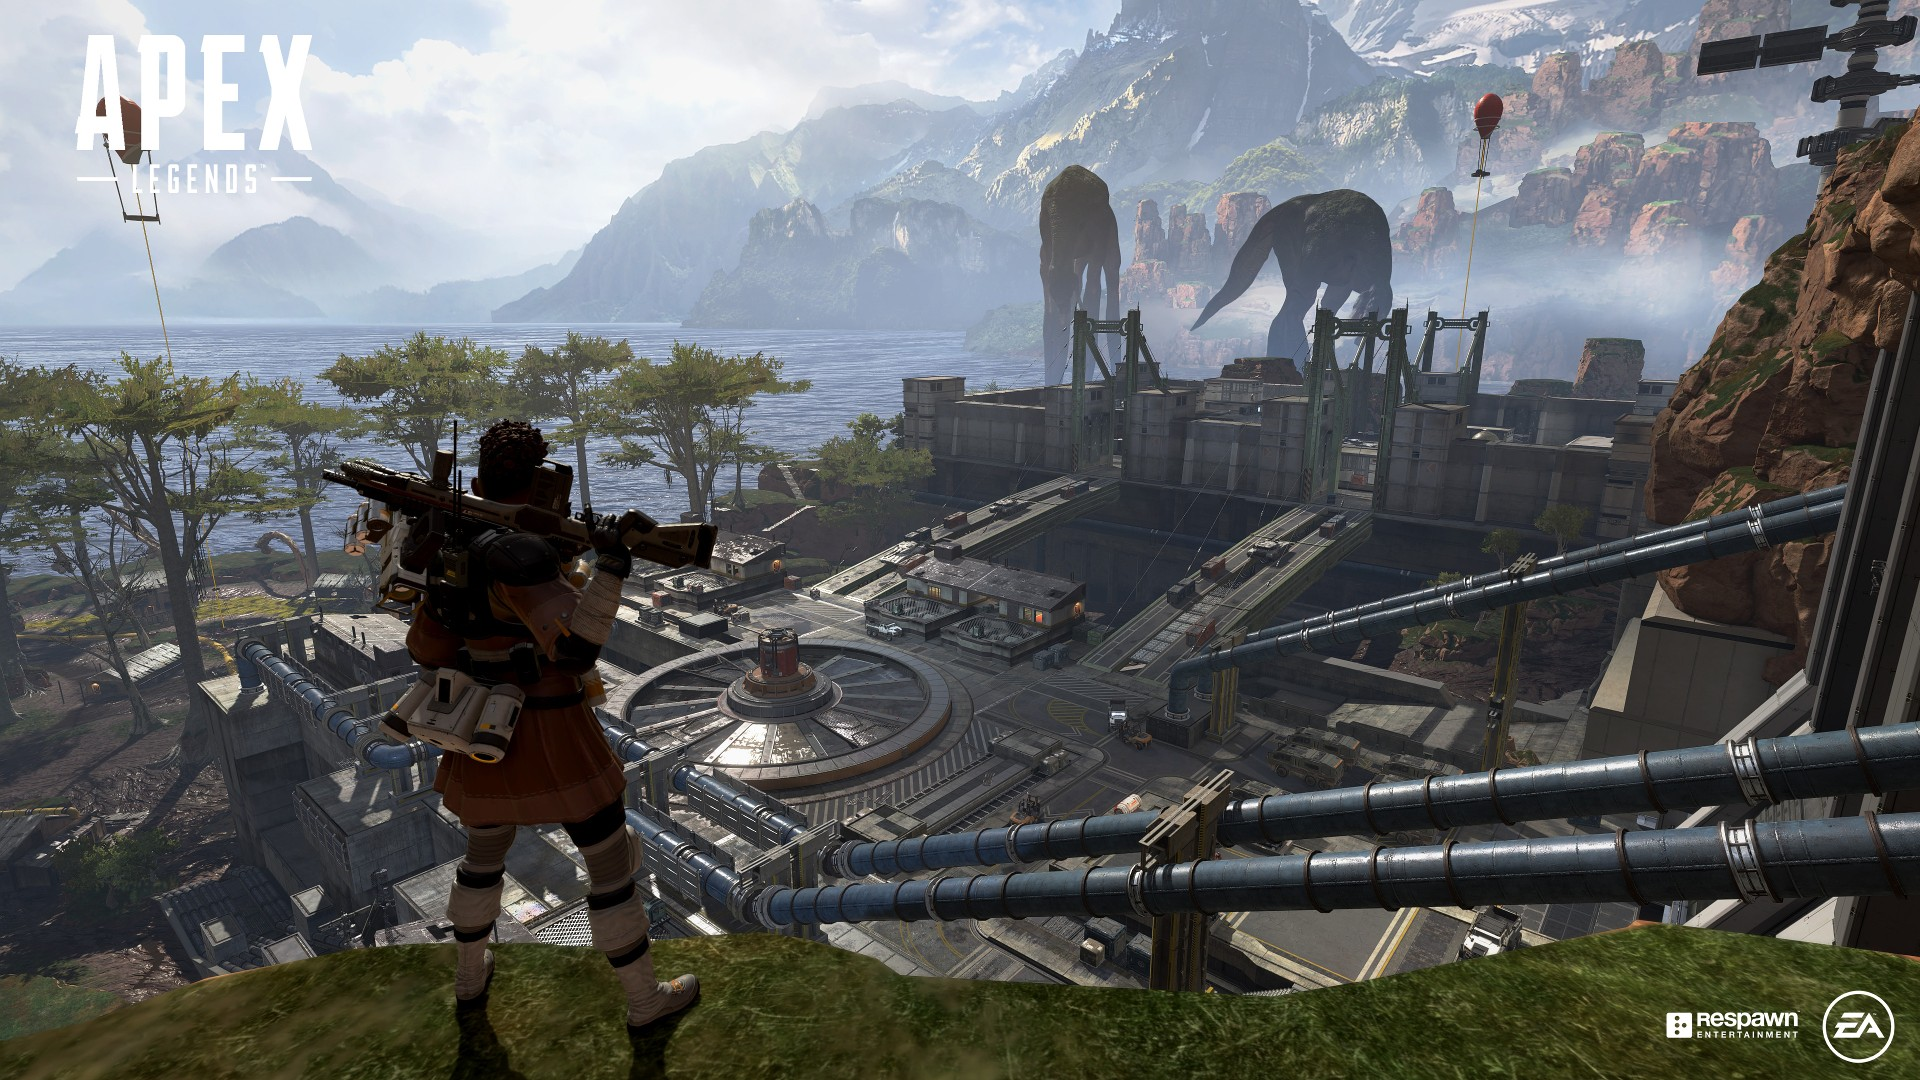 how to drop items, apex legends